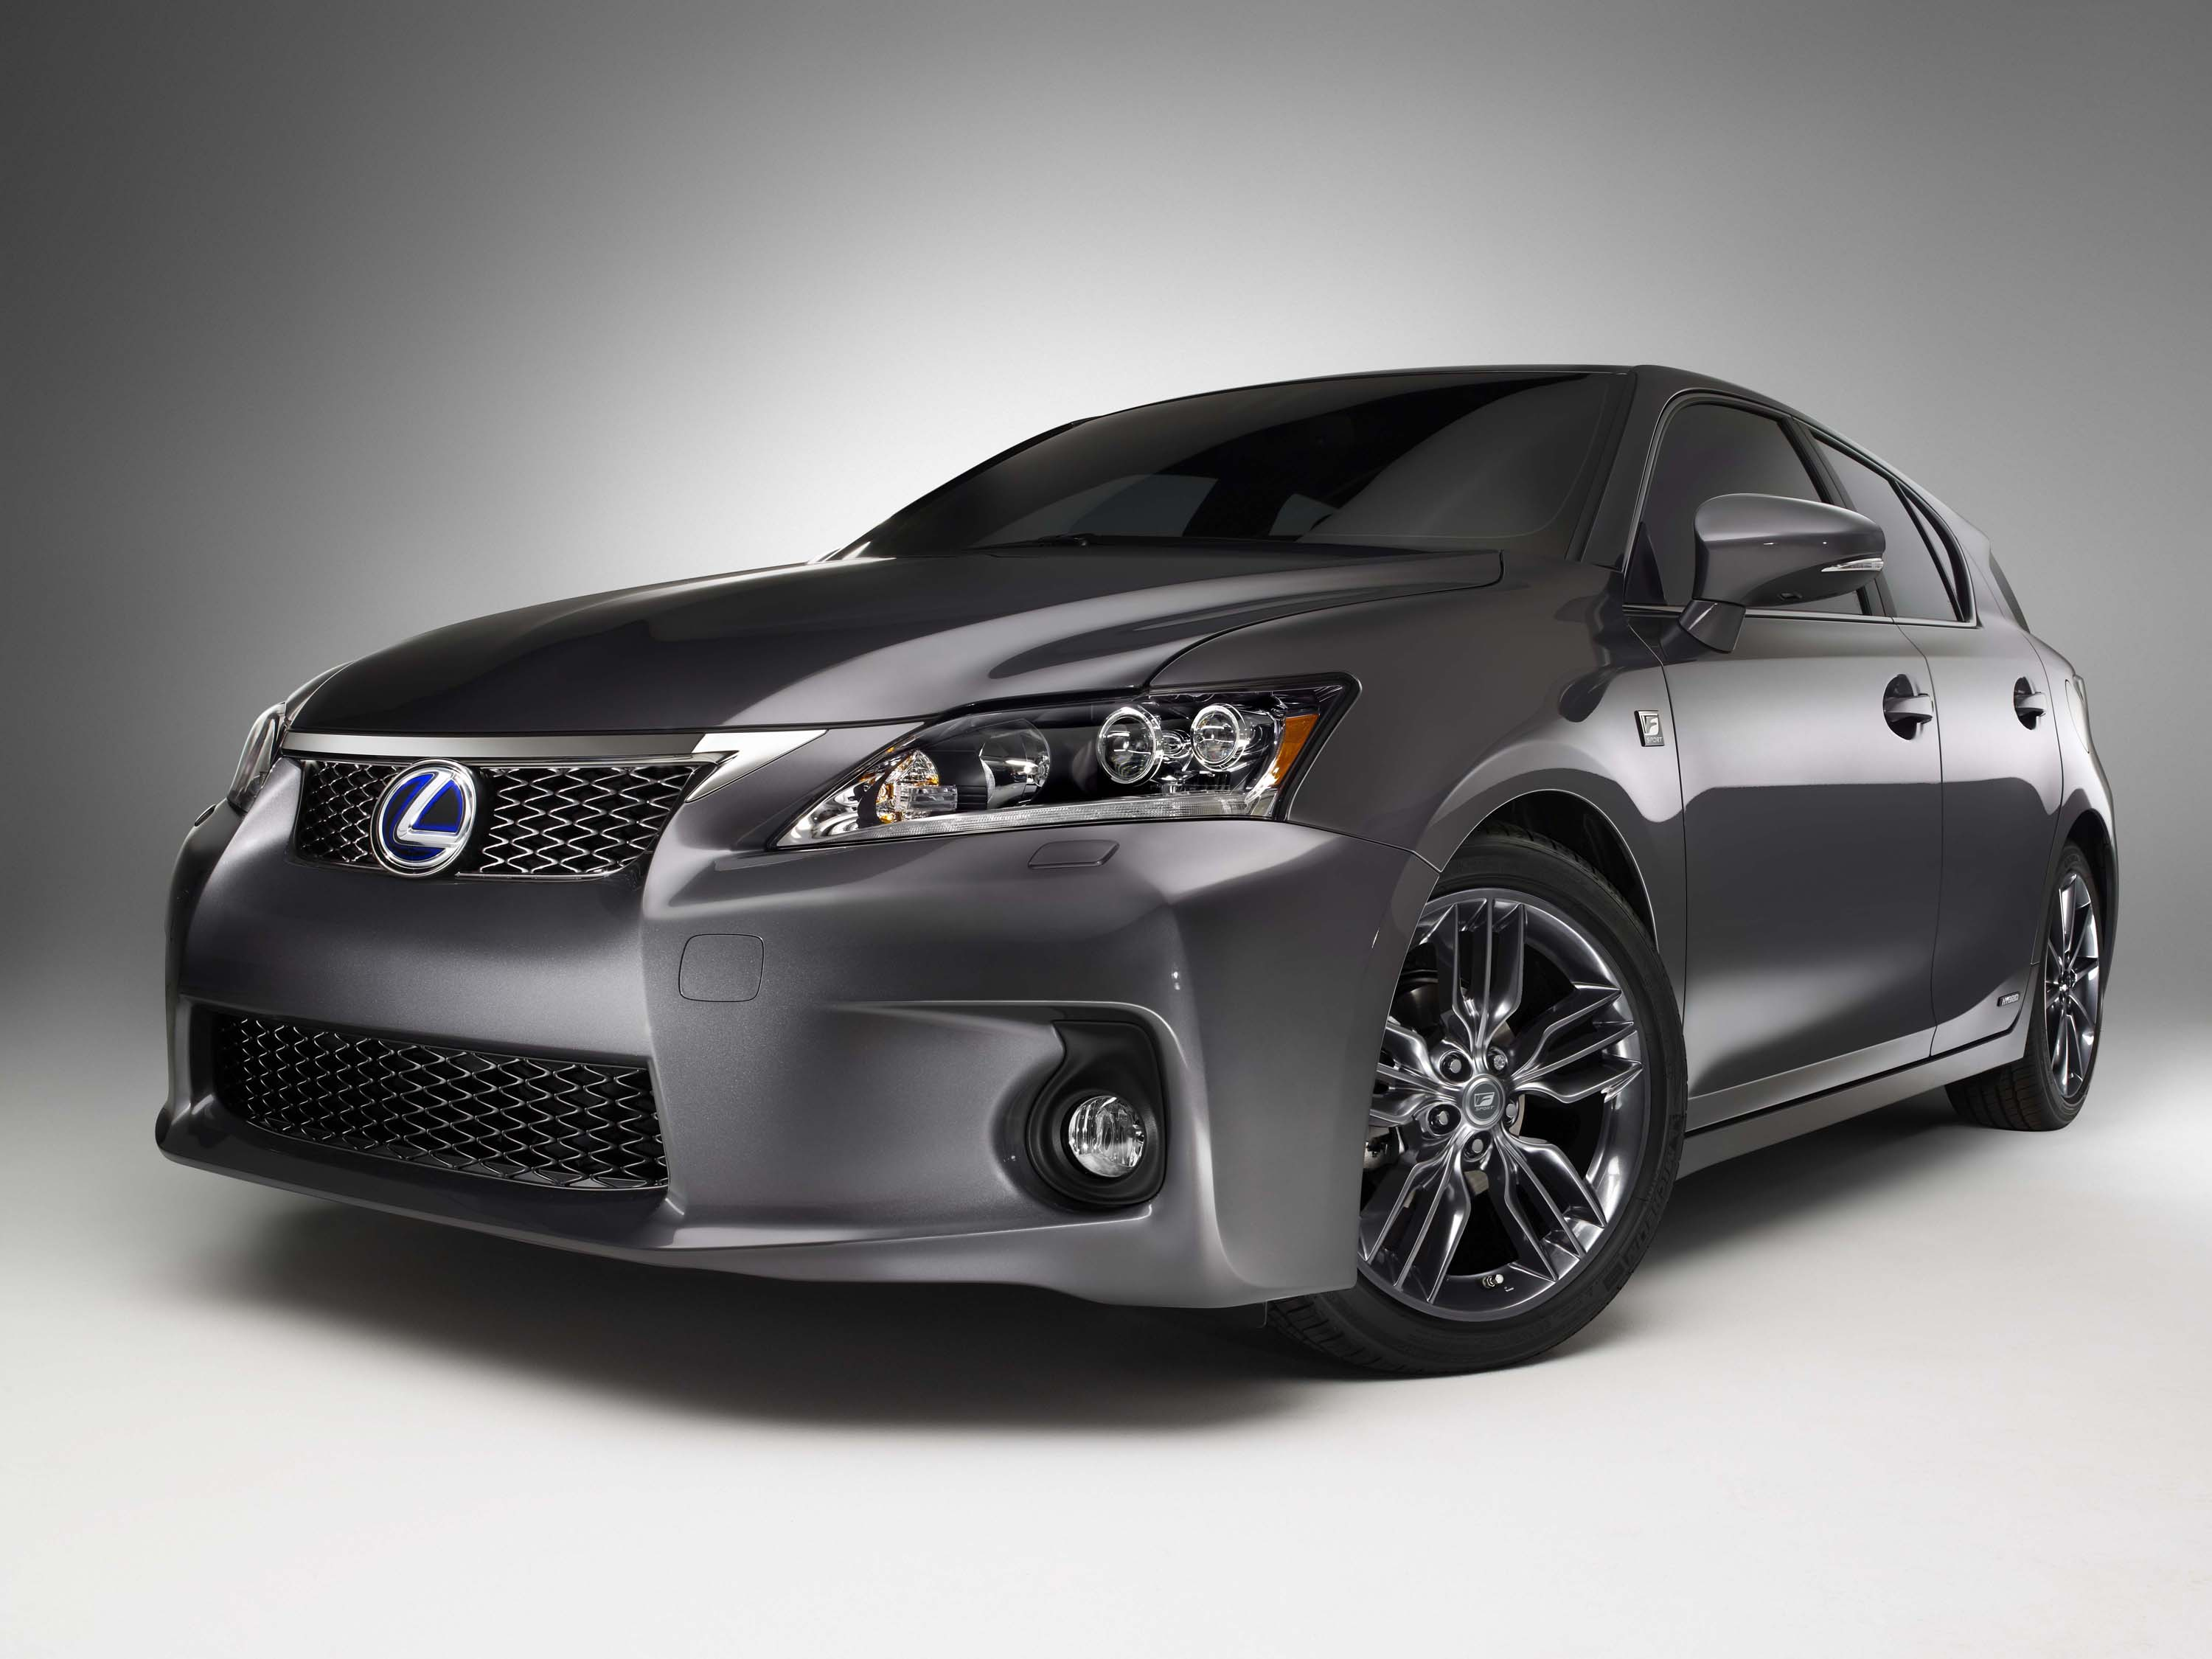 Car Dealerships In Ct >> 2012 Lexus CT 200h F-Sport Special Edition | Top Speed